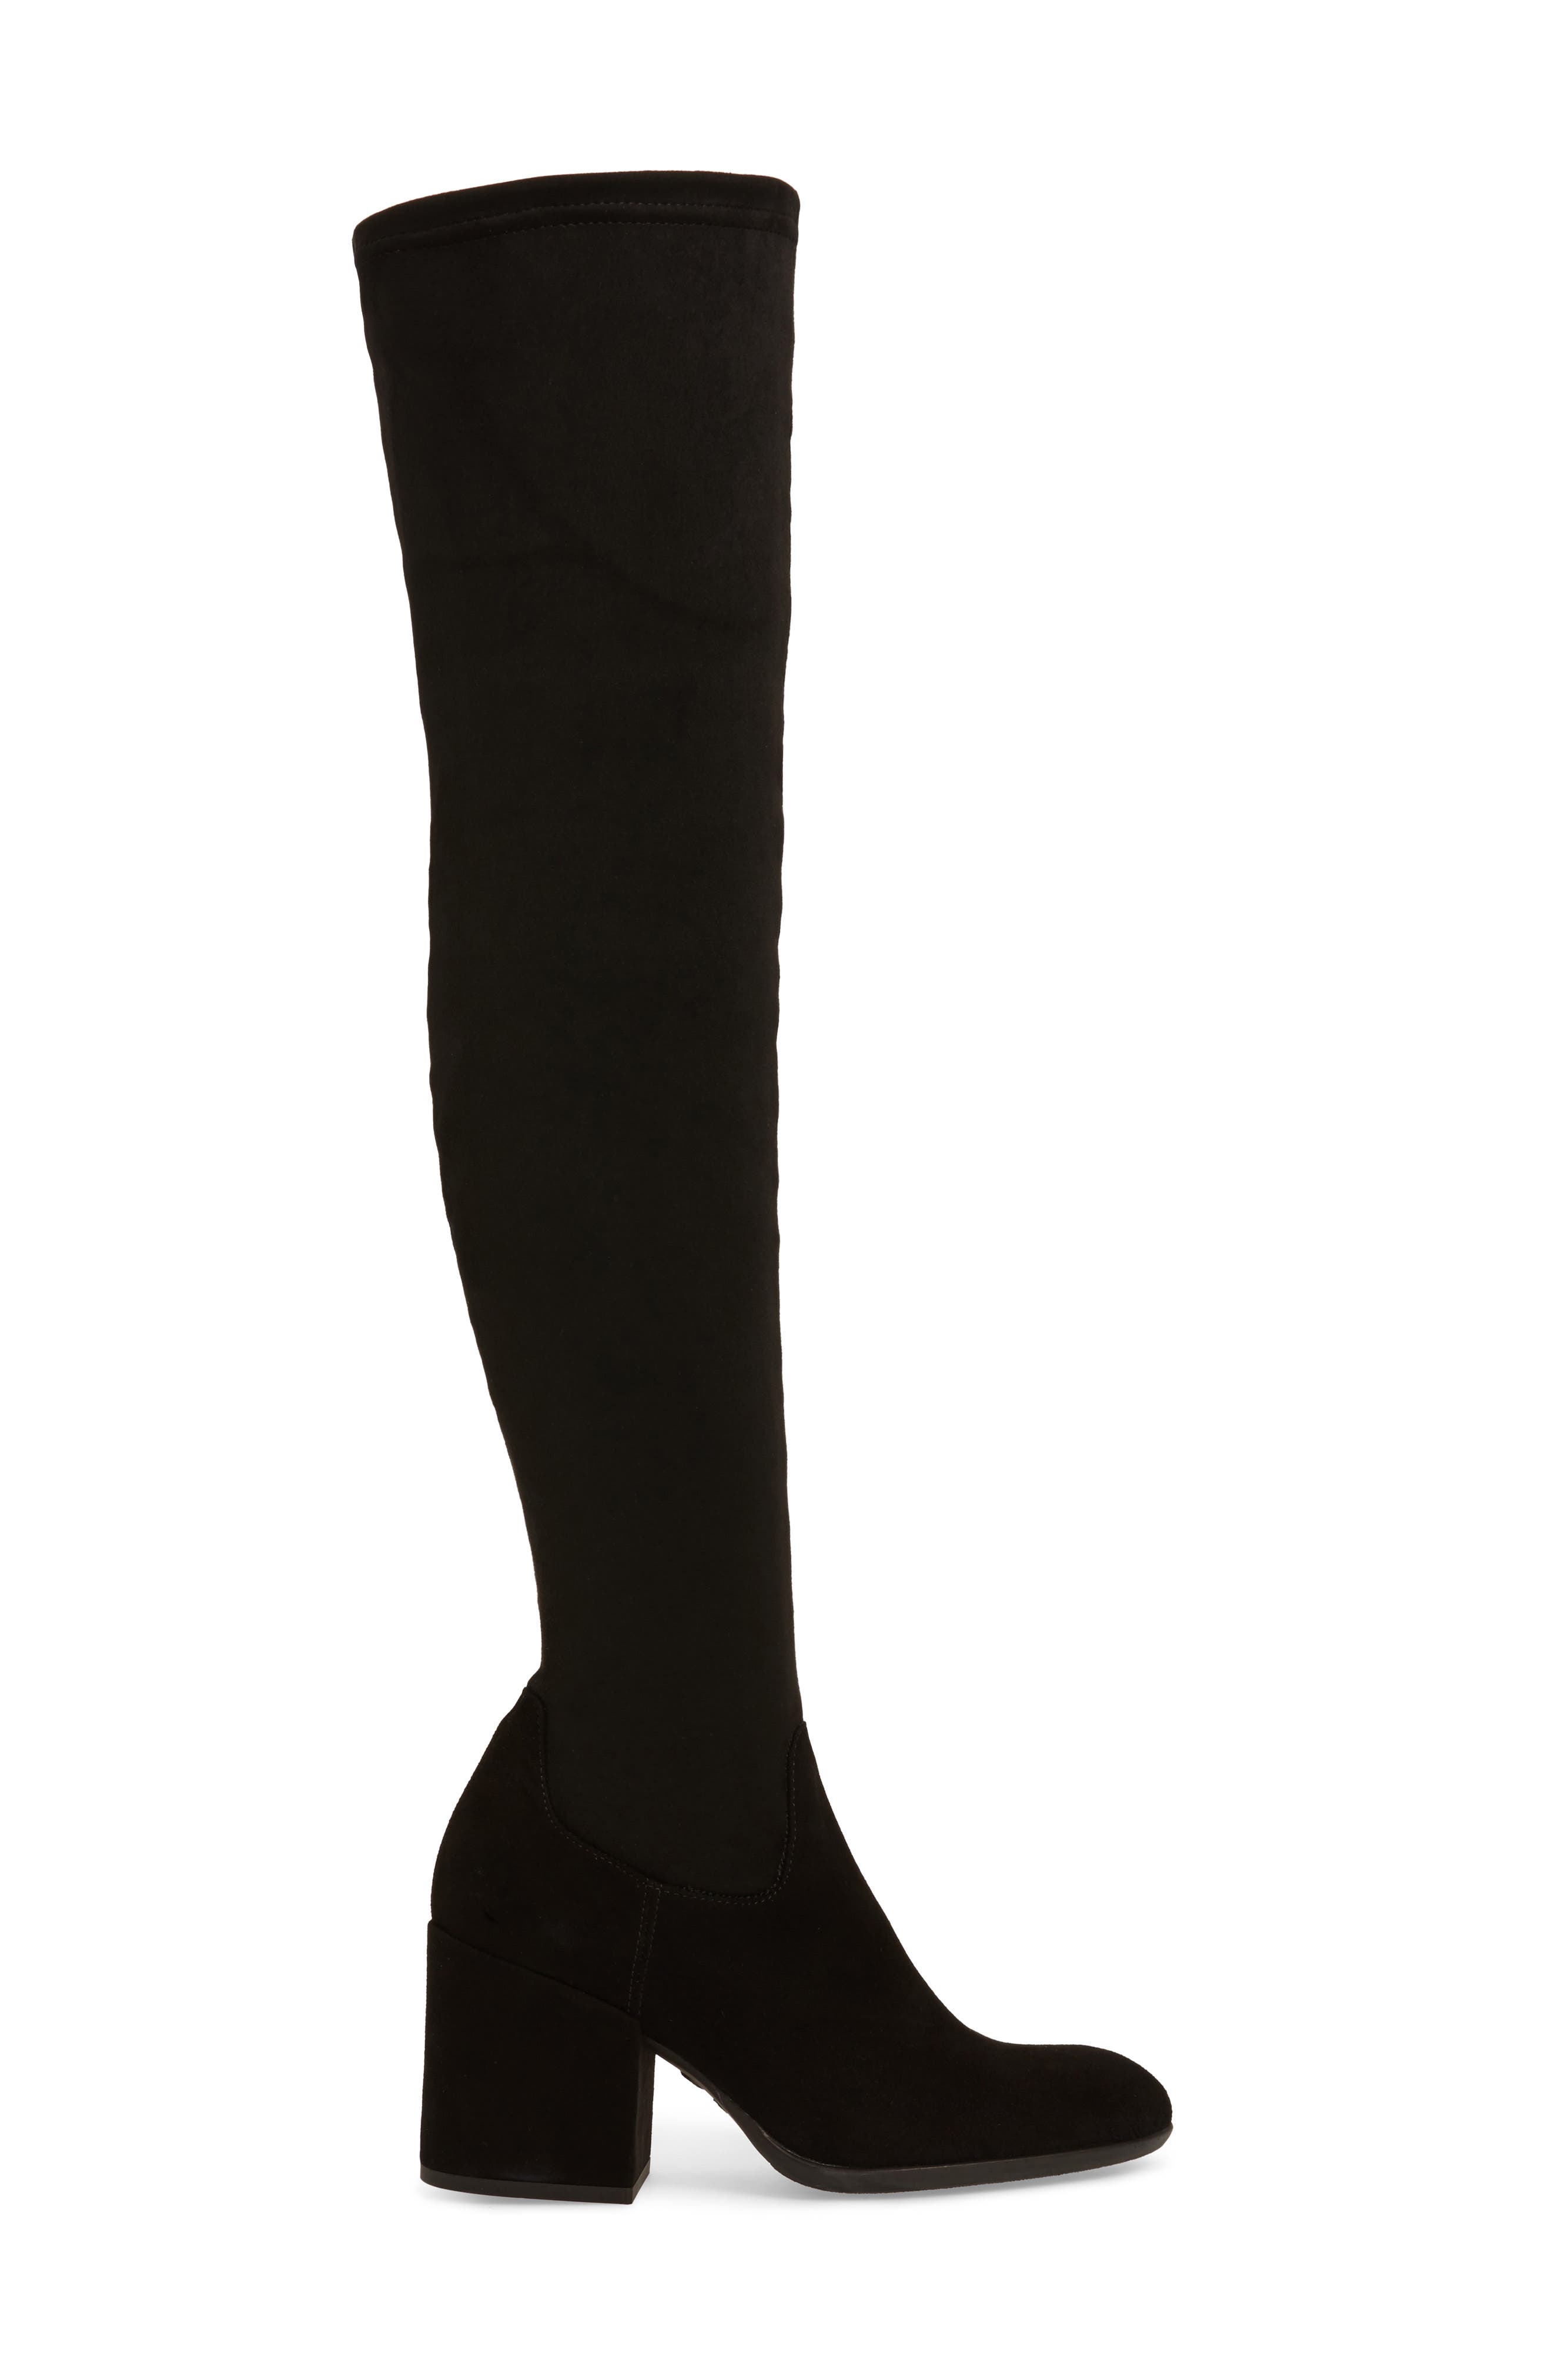 Verve Over the Knee Boot,                             Alternate thumbnail 3, color,                             001